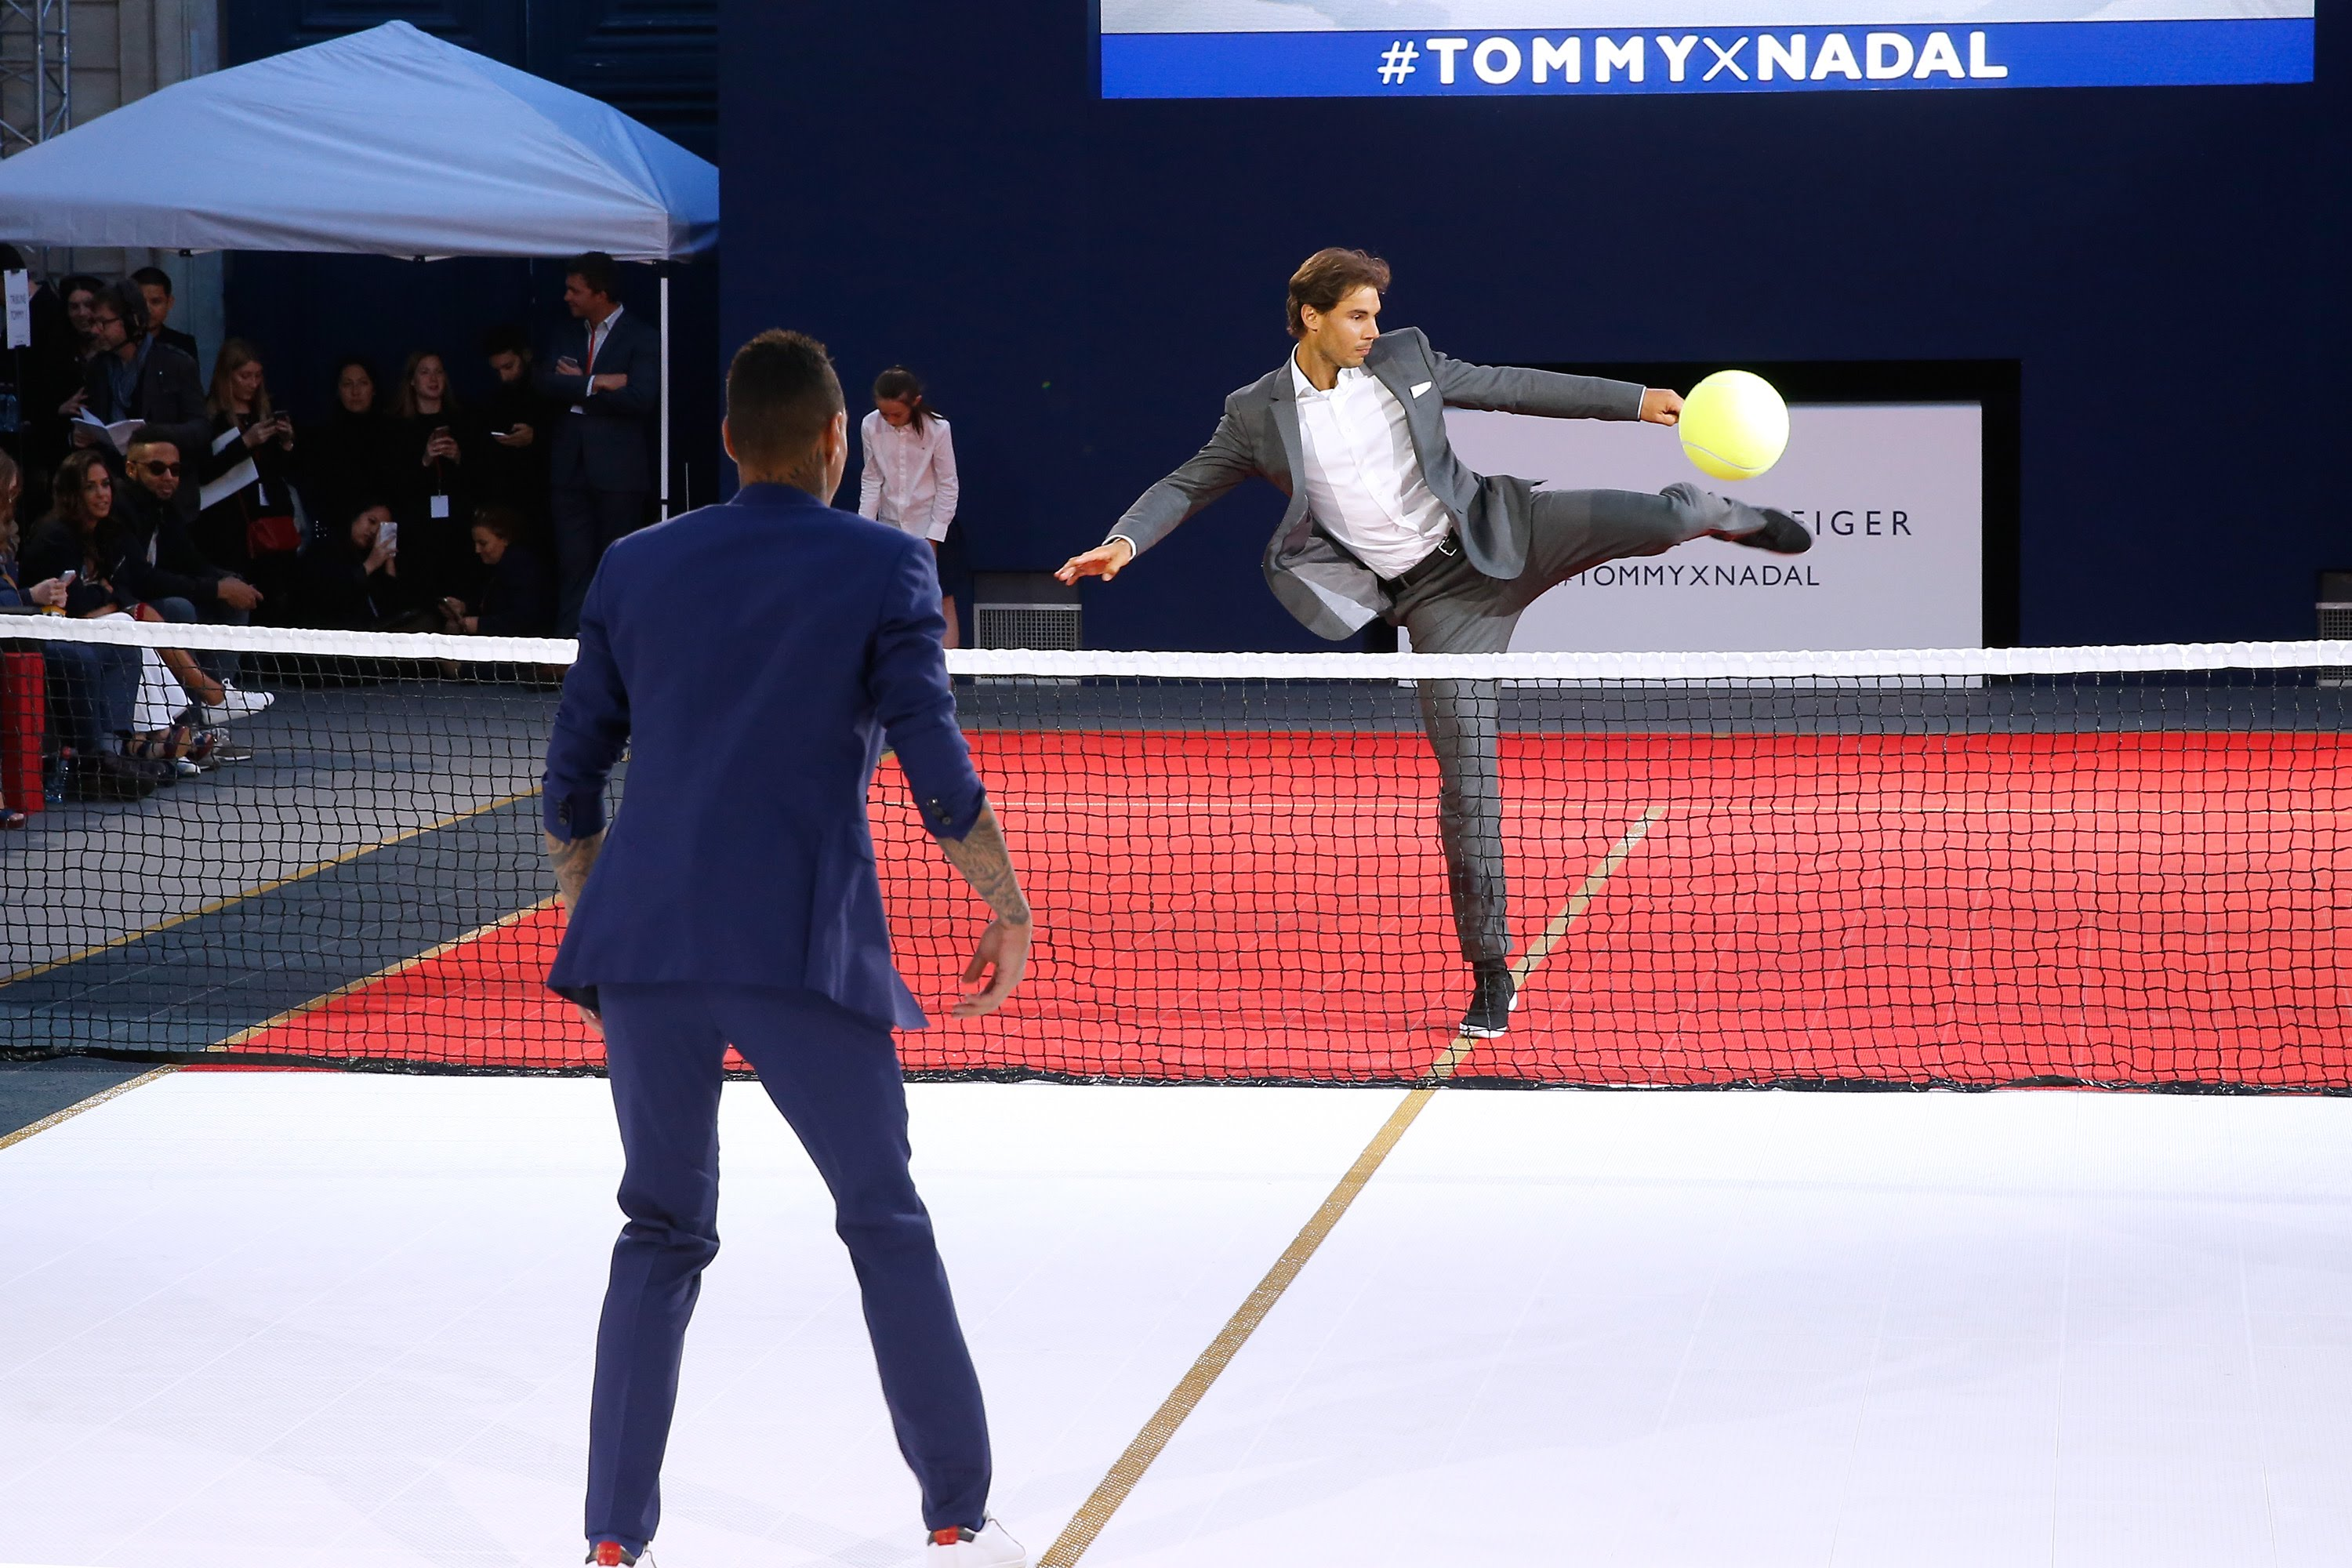 Rafael Nadal And Gregory Vander Wiel Meet On Tennis Court For Tommy Hilfiger #TommyxNadal Event